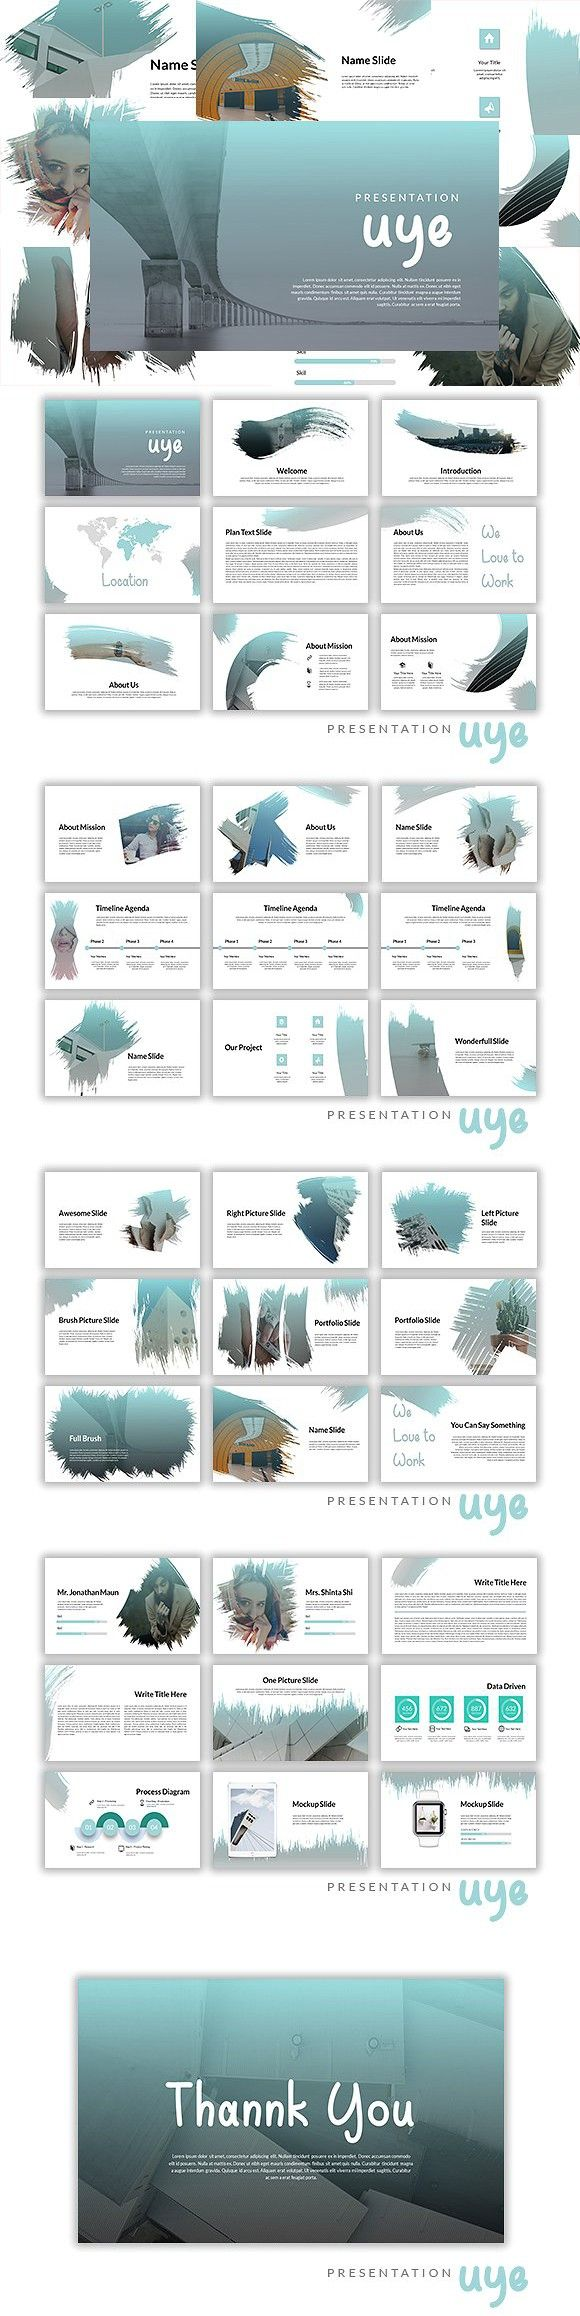 Uye Powerpoint Template | ONLY $10. Presentation Templates